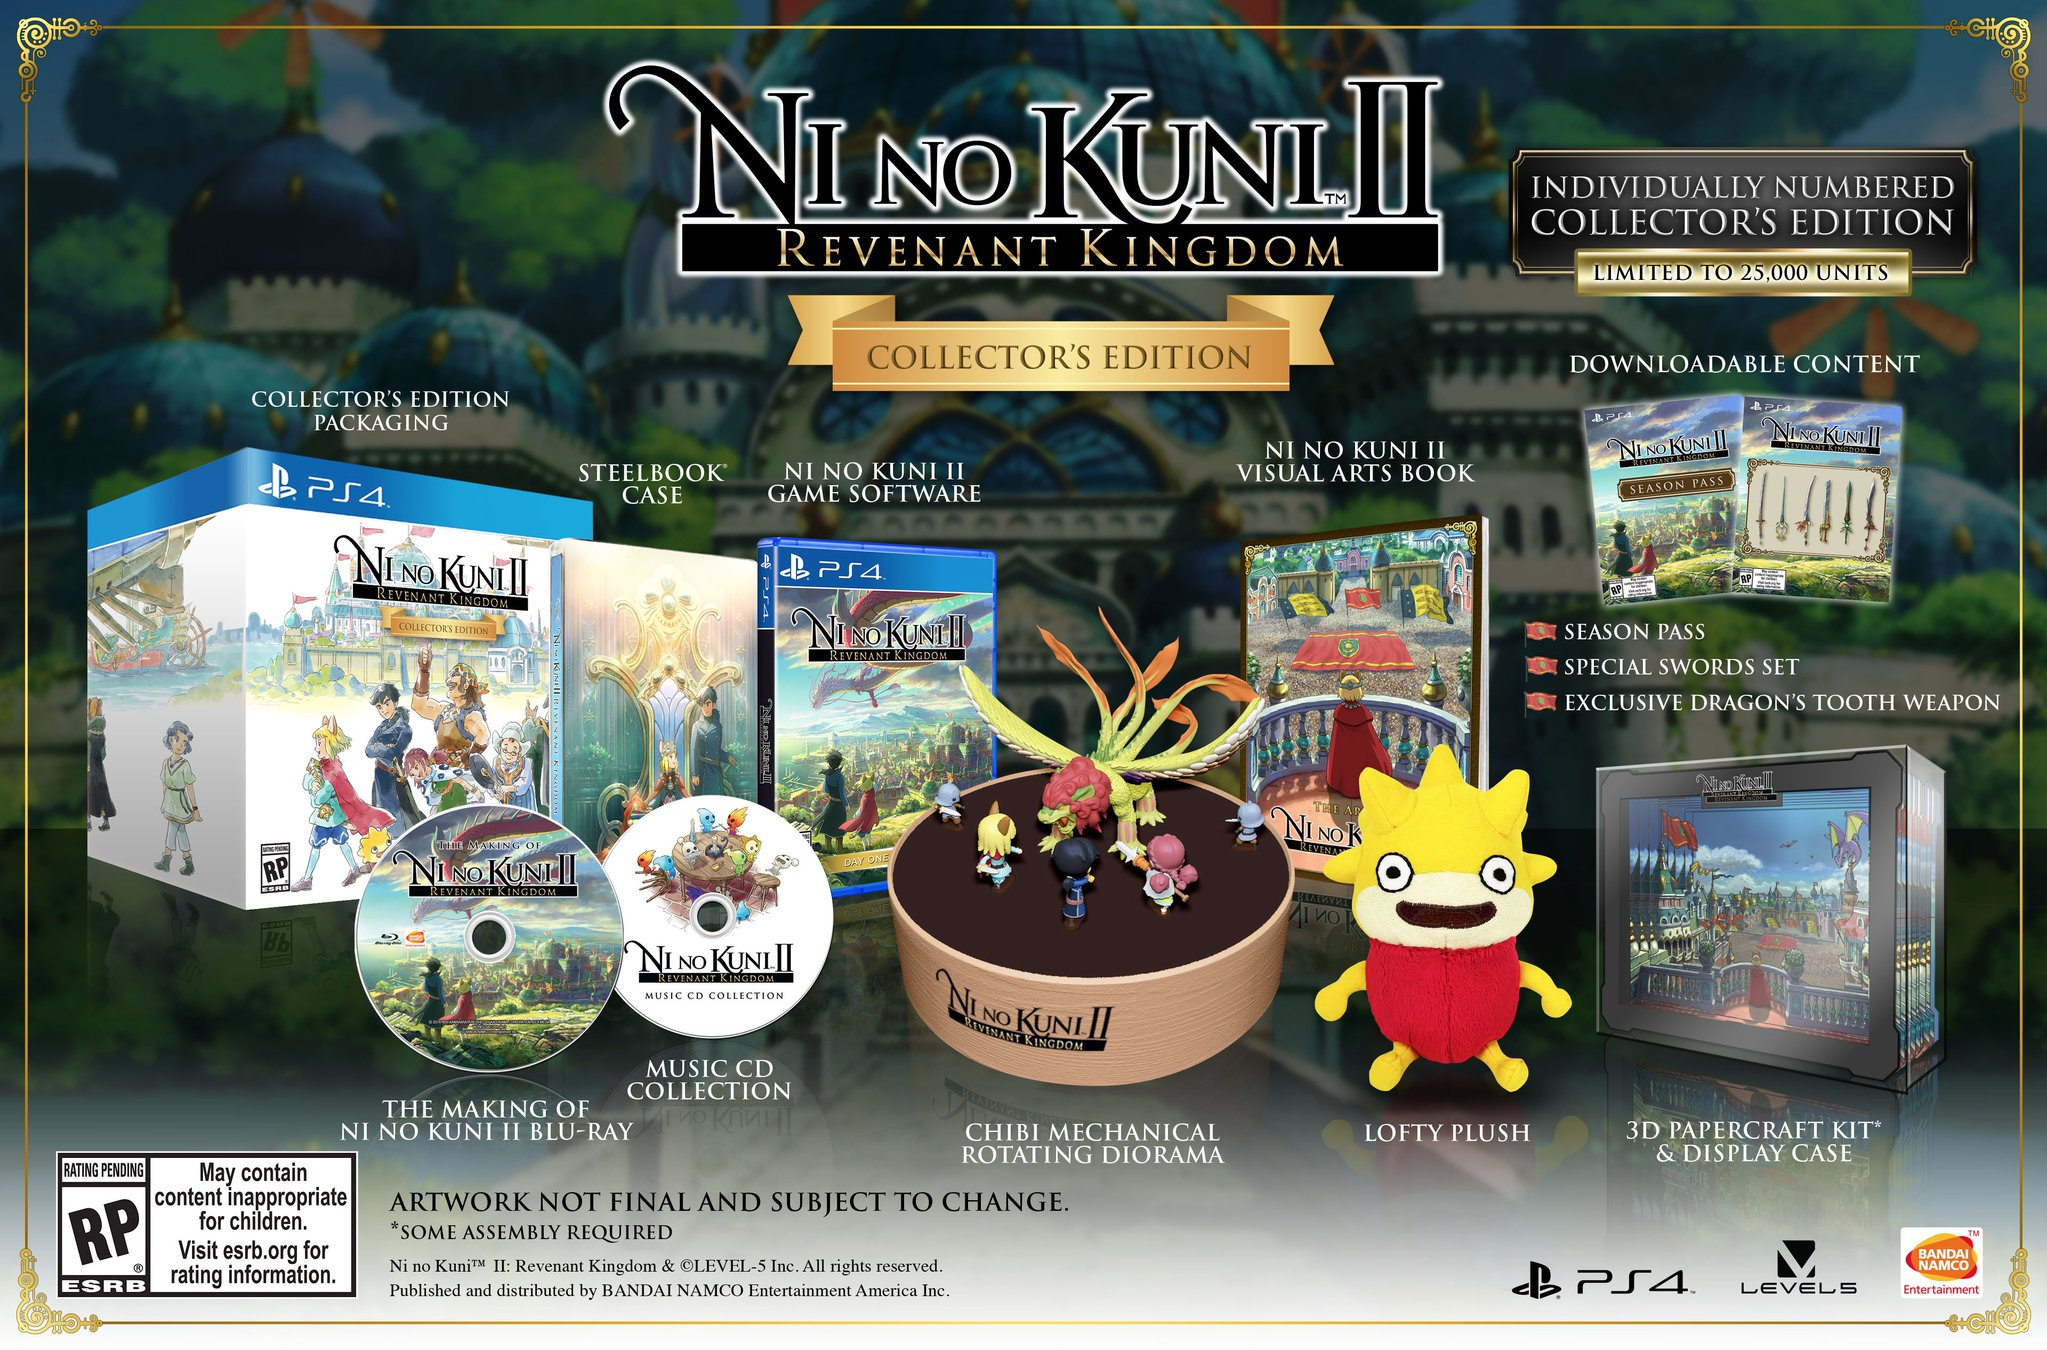 Ni_No_Kuni_II_Collectors_Edition.jpg